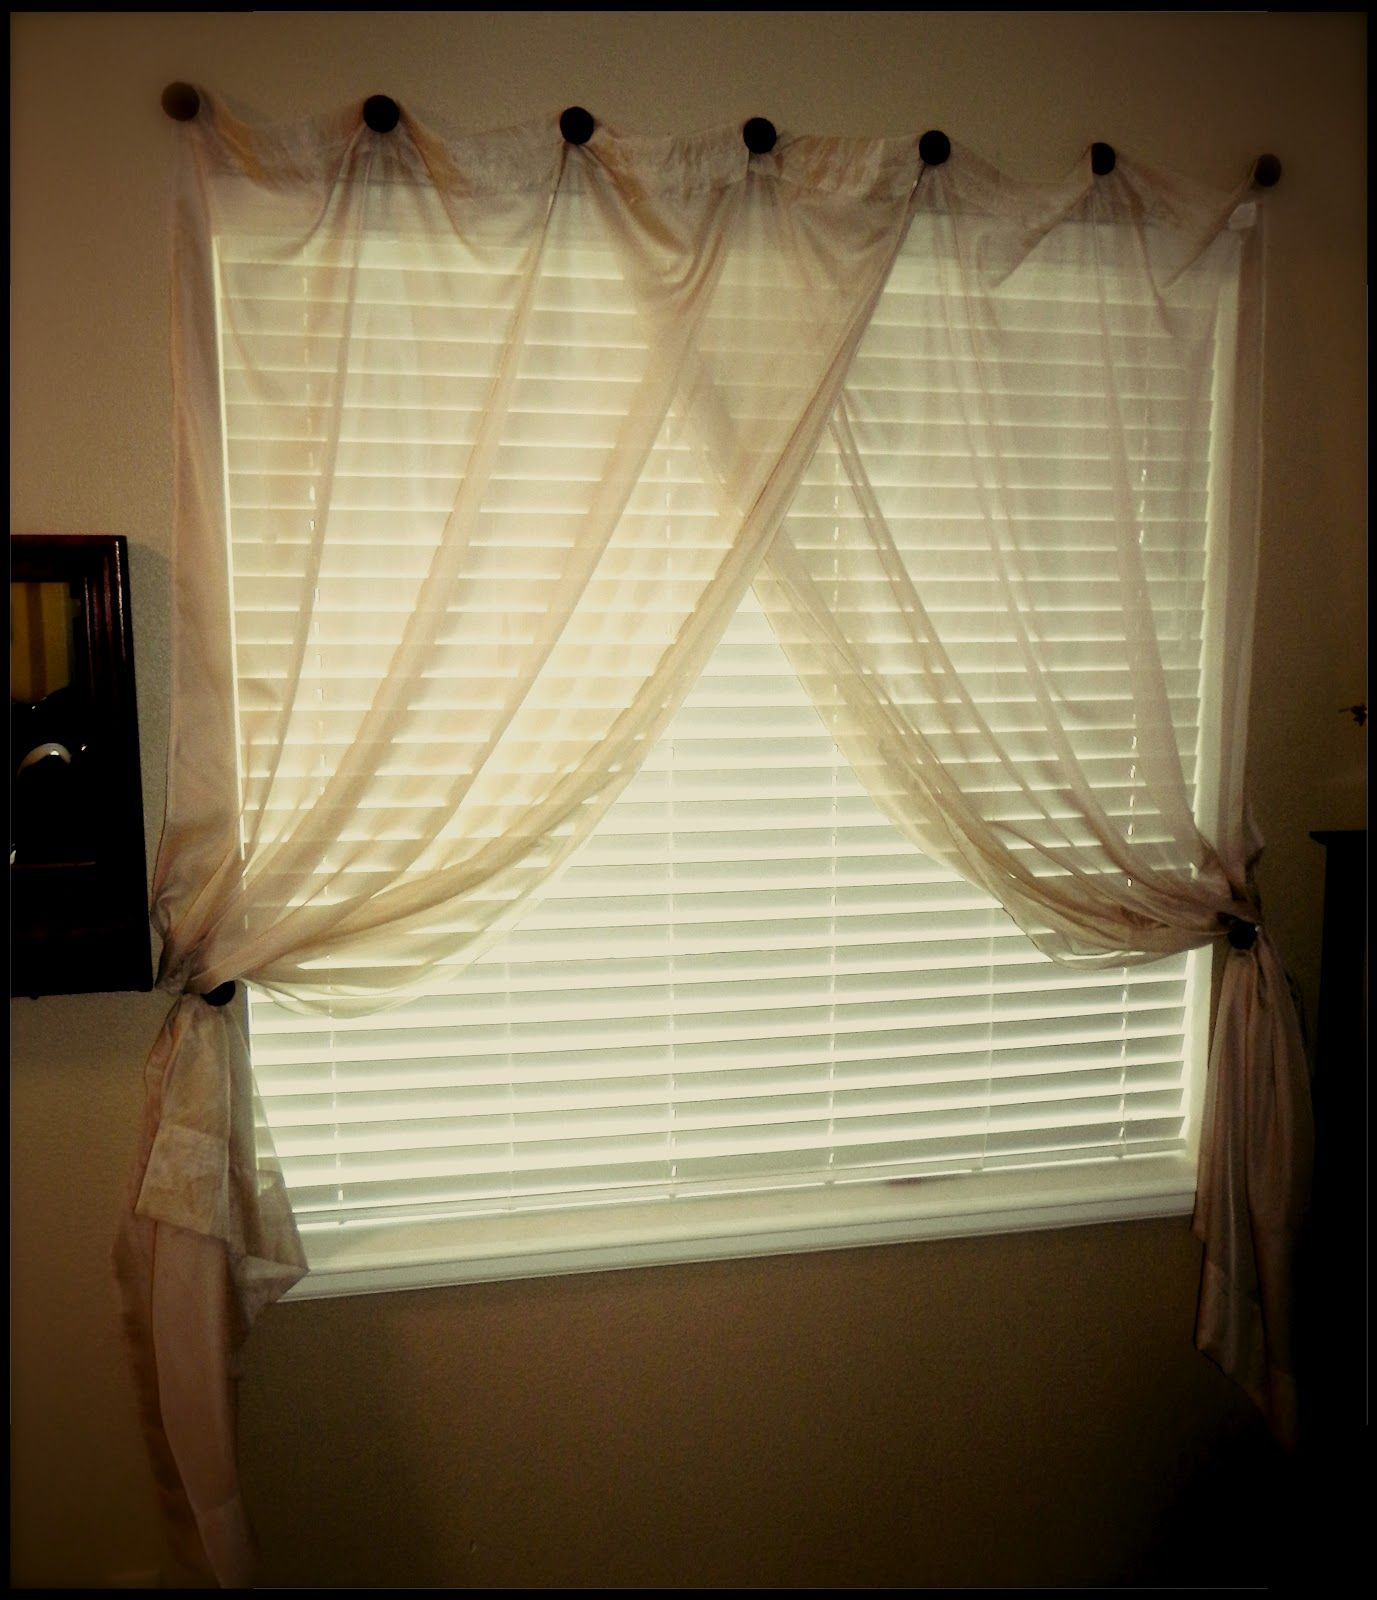 Life Unexpected How To Hang A Curtain Without A Rod PERFECT For Rentals With No Curtain Rods